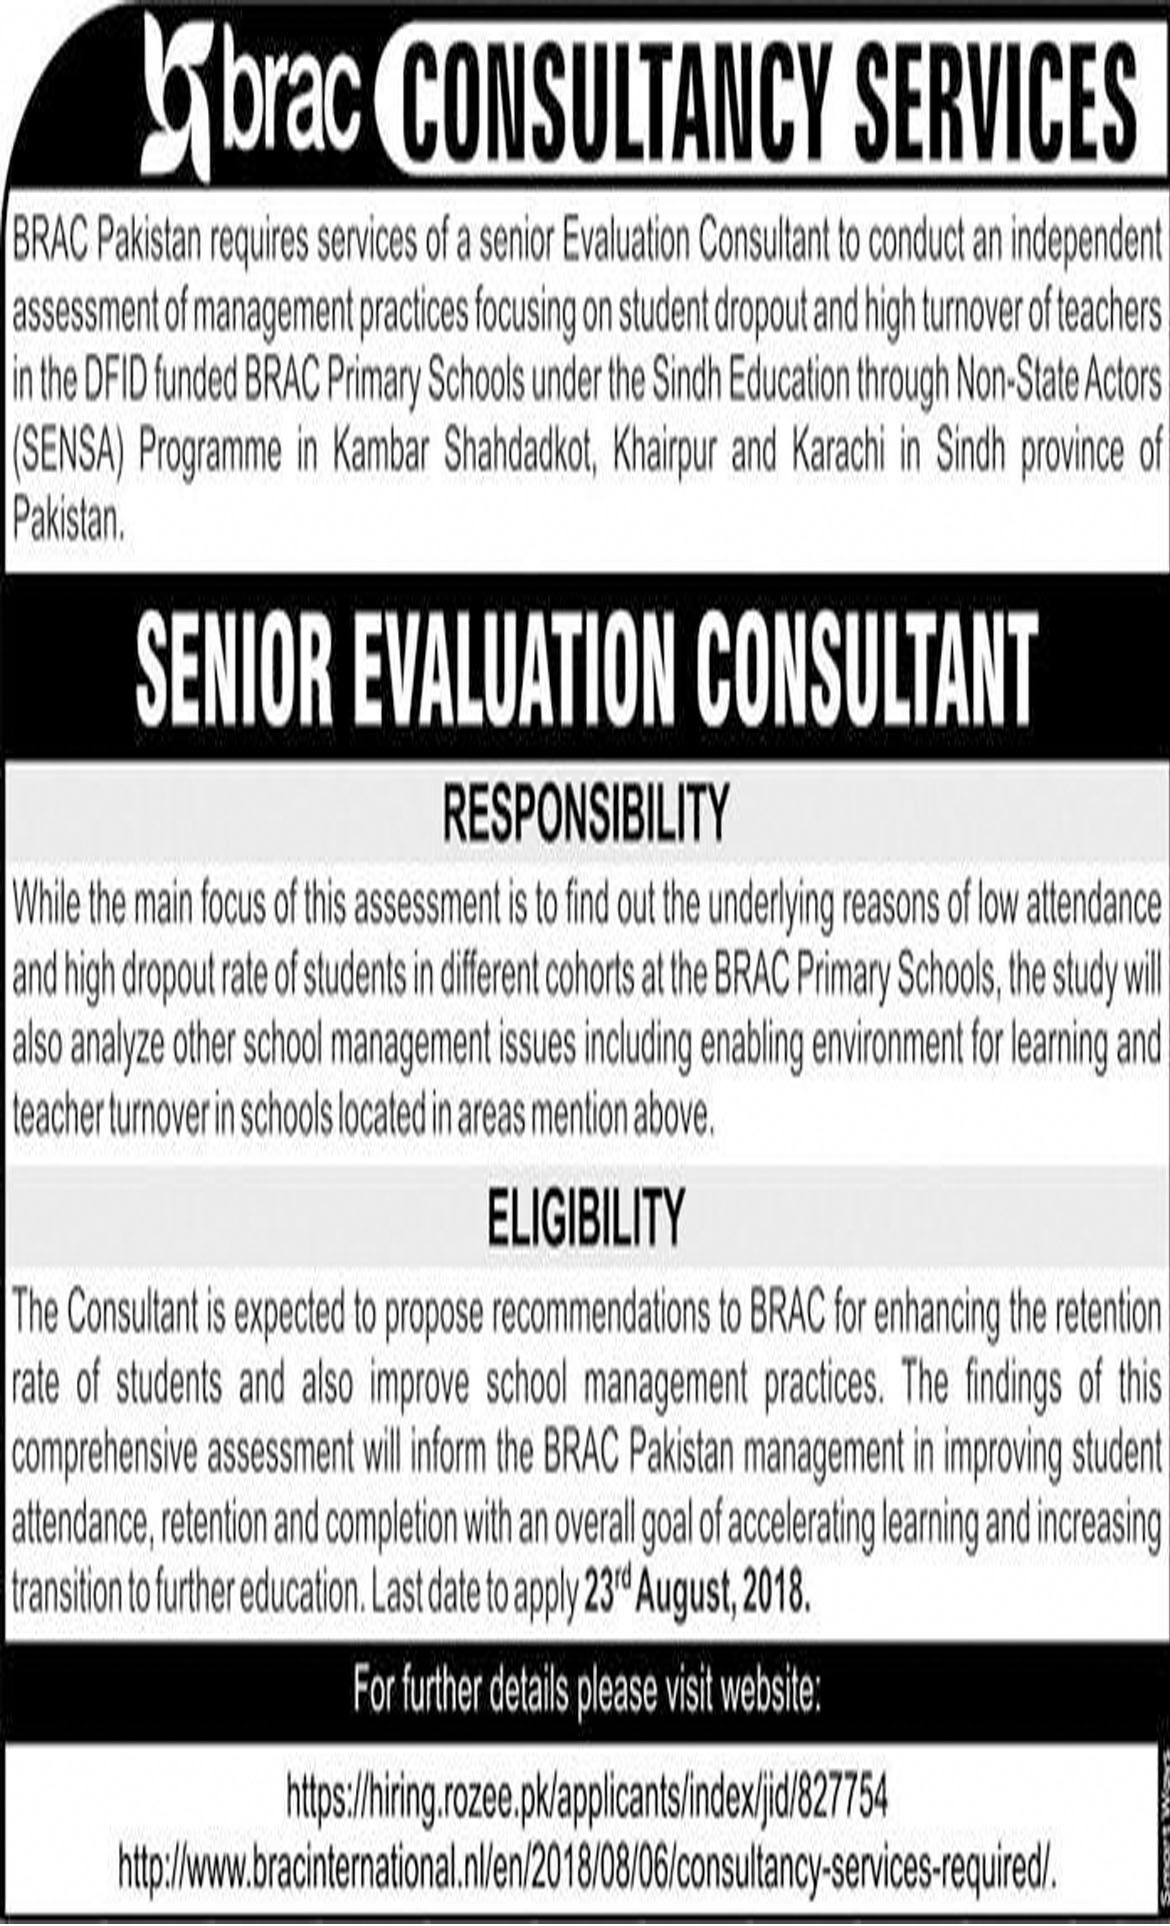 Job In BRAC Consultants Services  9 Aug 2018